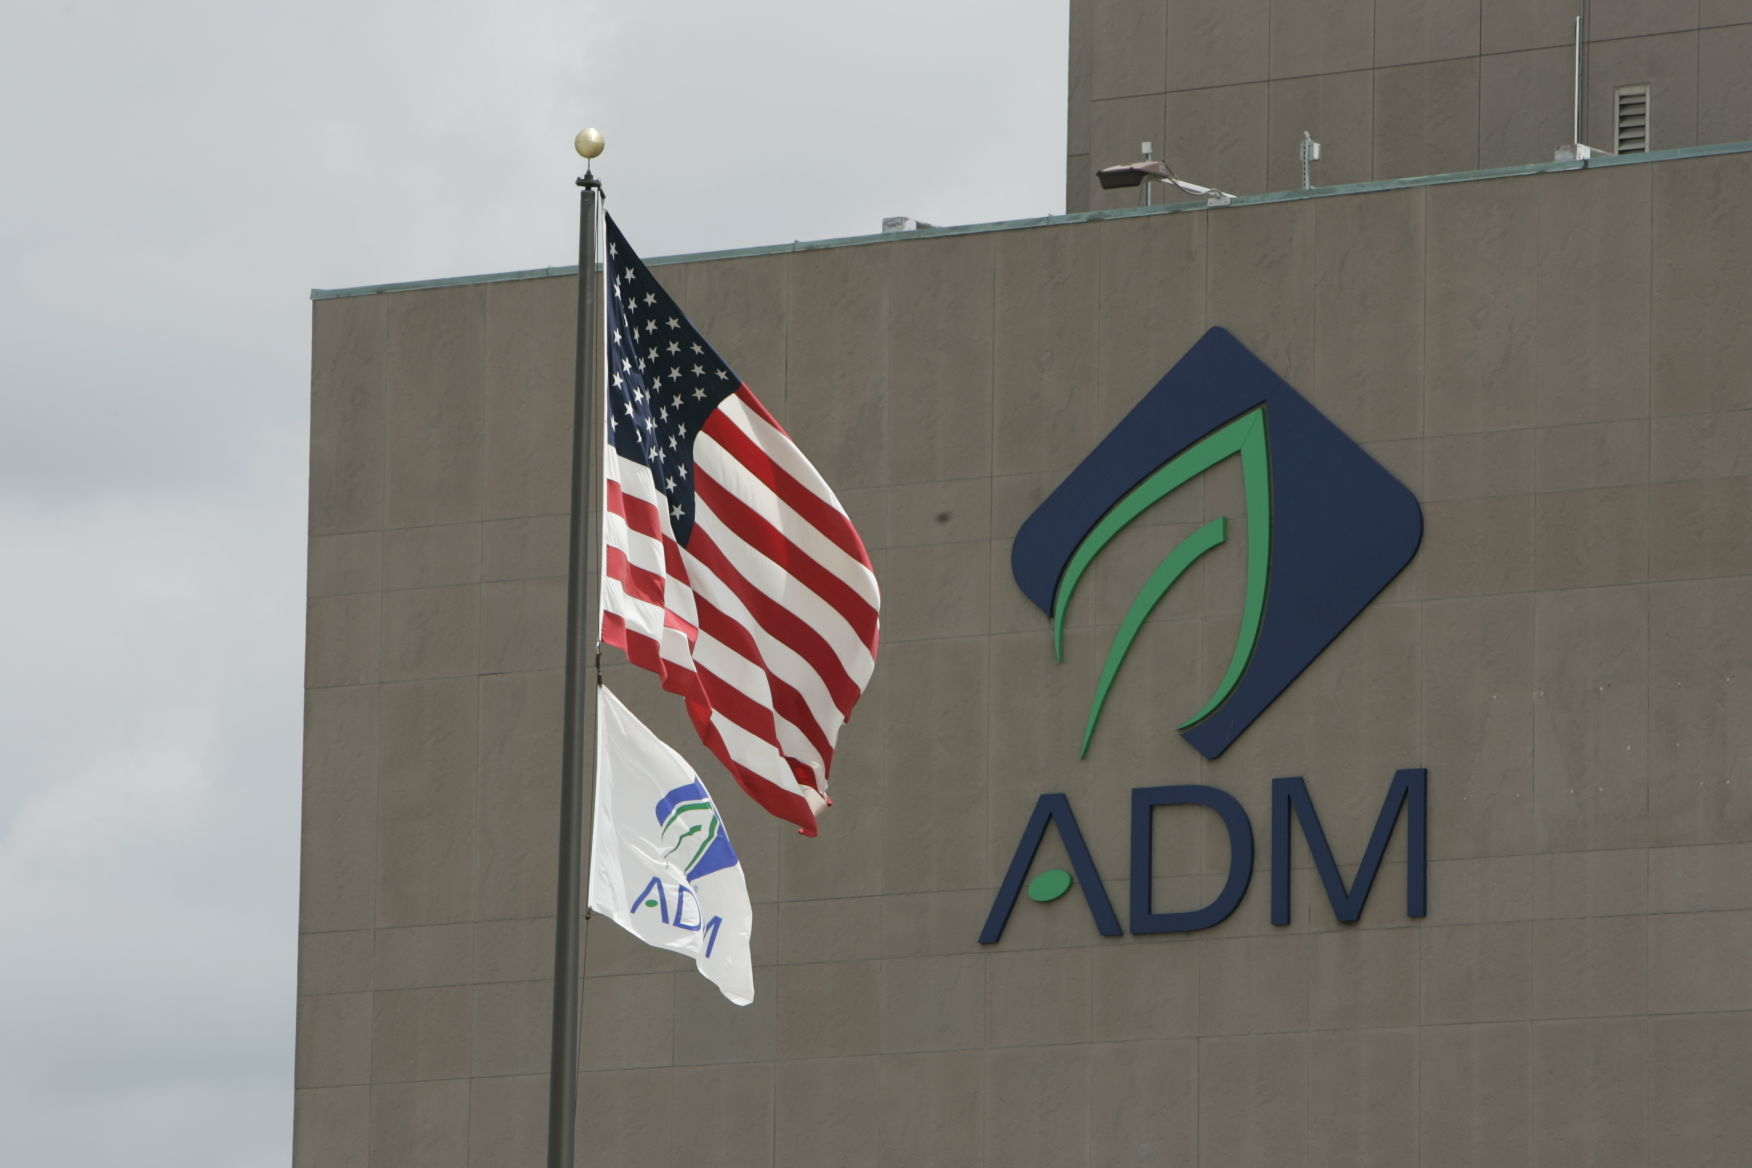 Formidable money-making stocks for today: Archer-Daniels-Midland Company (ADM)